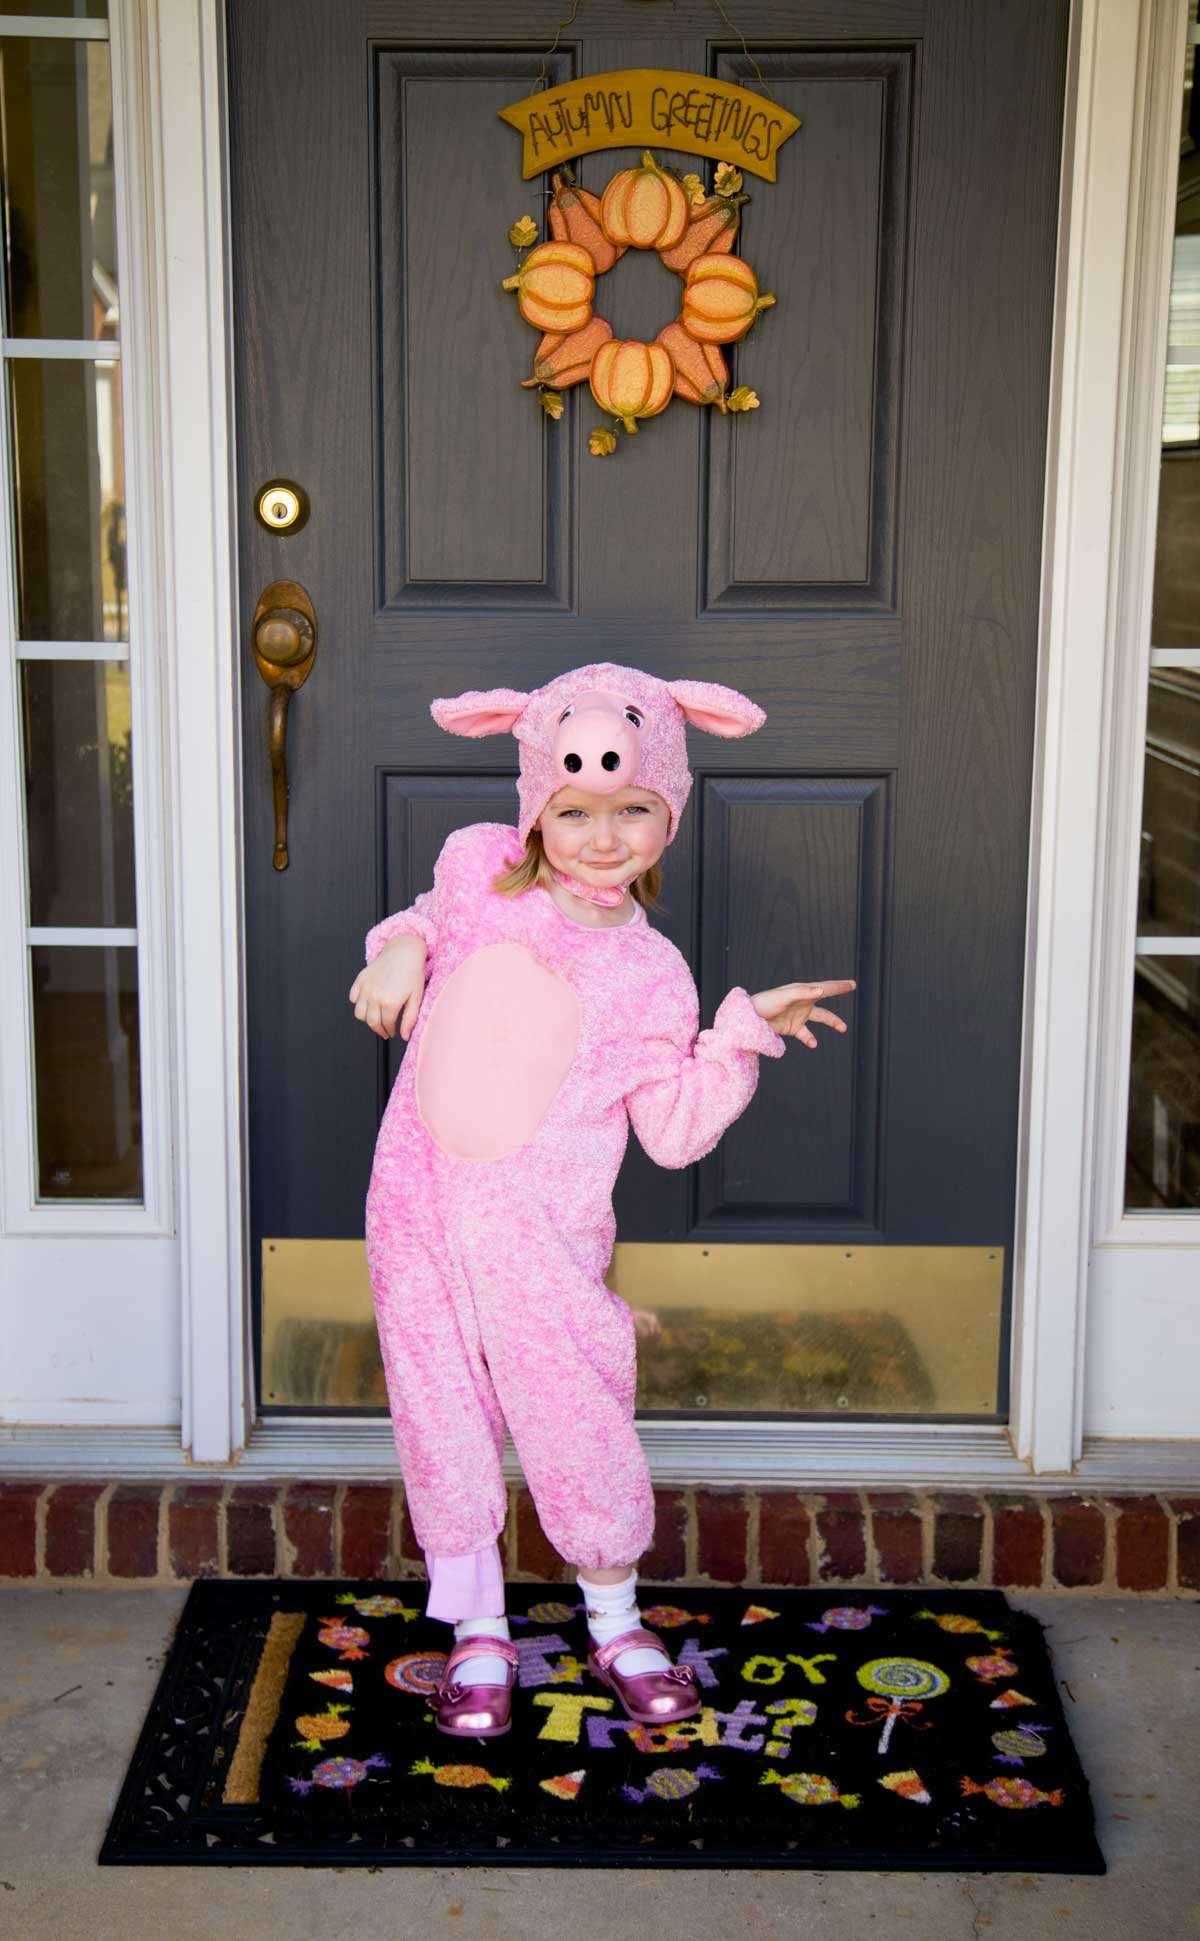 A little girl dressed in a farm day outfit stands in front of her front door.